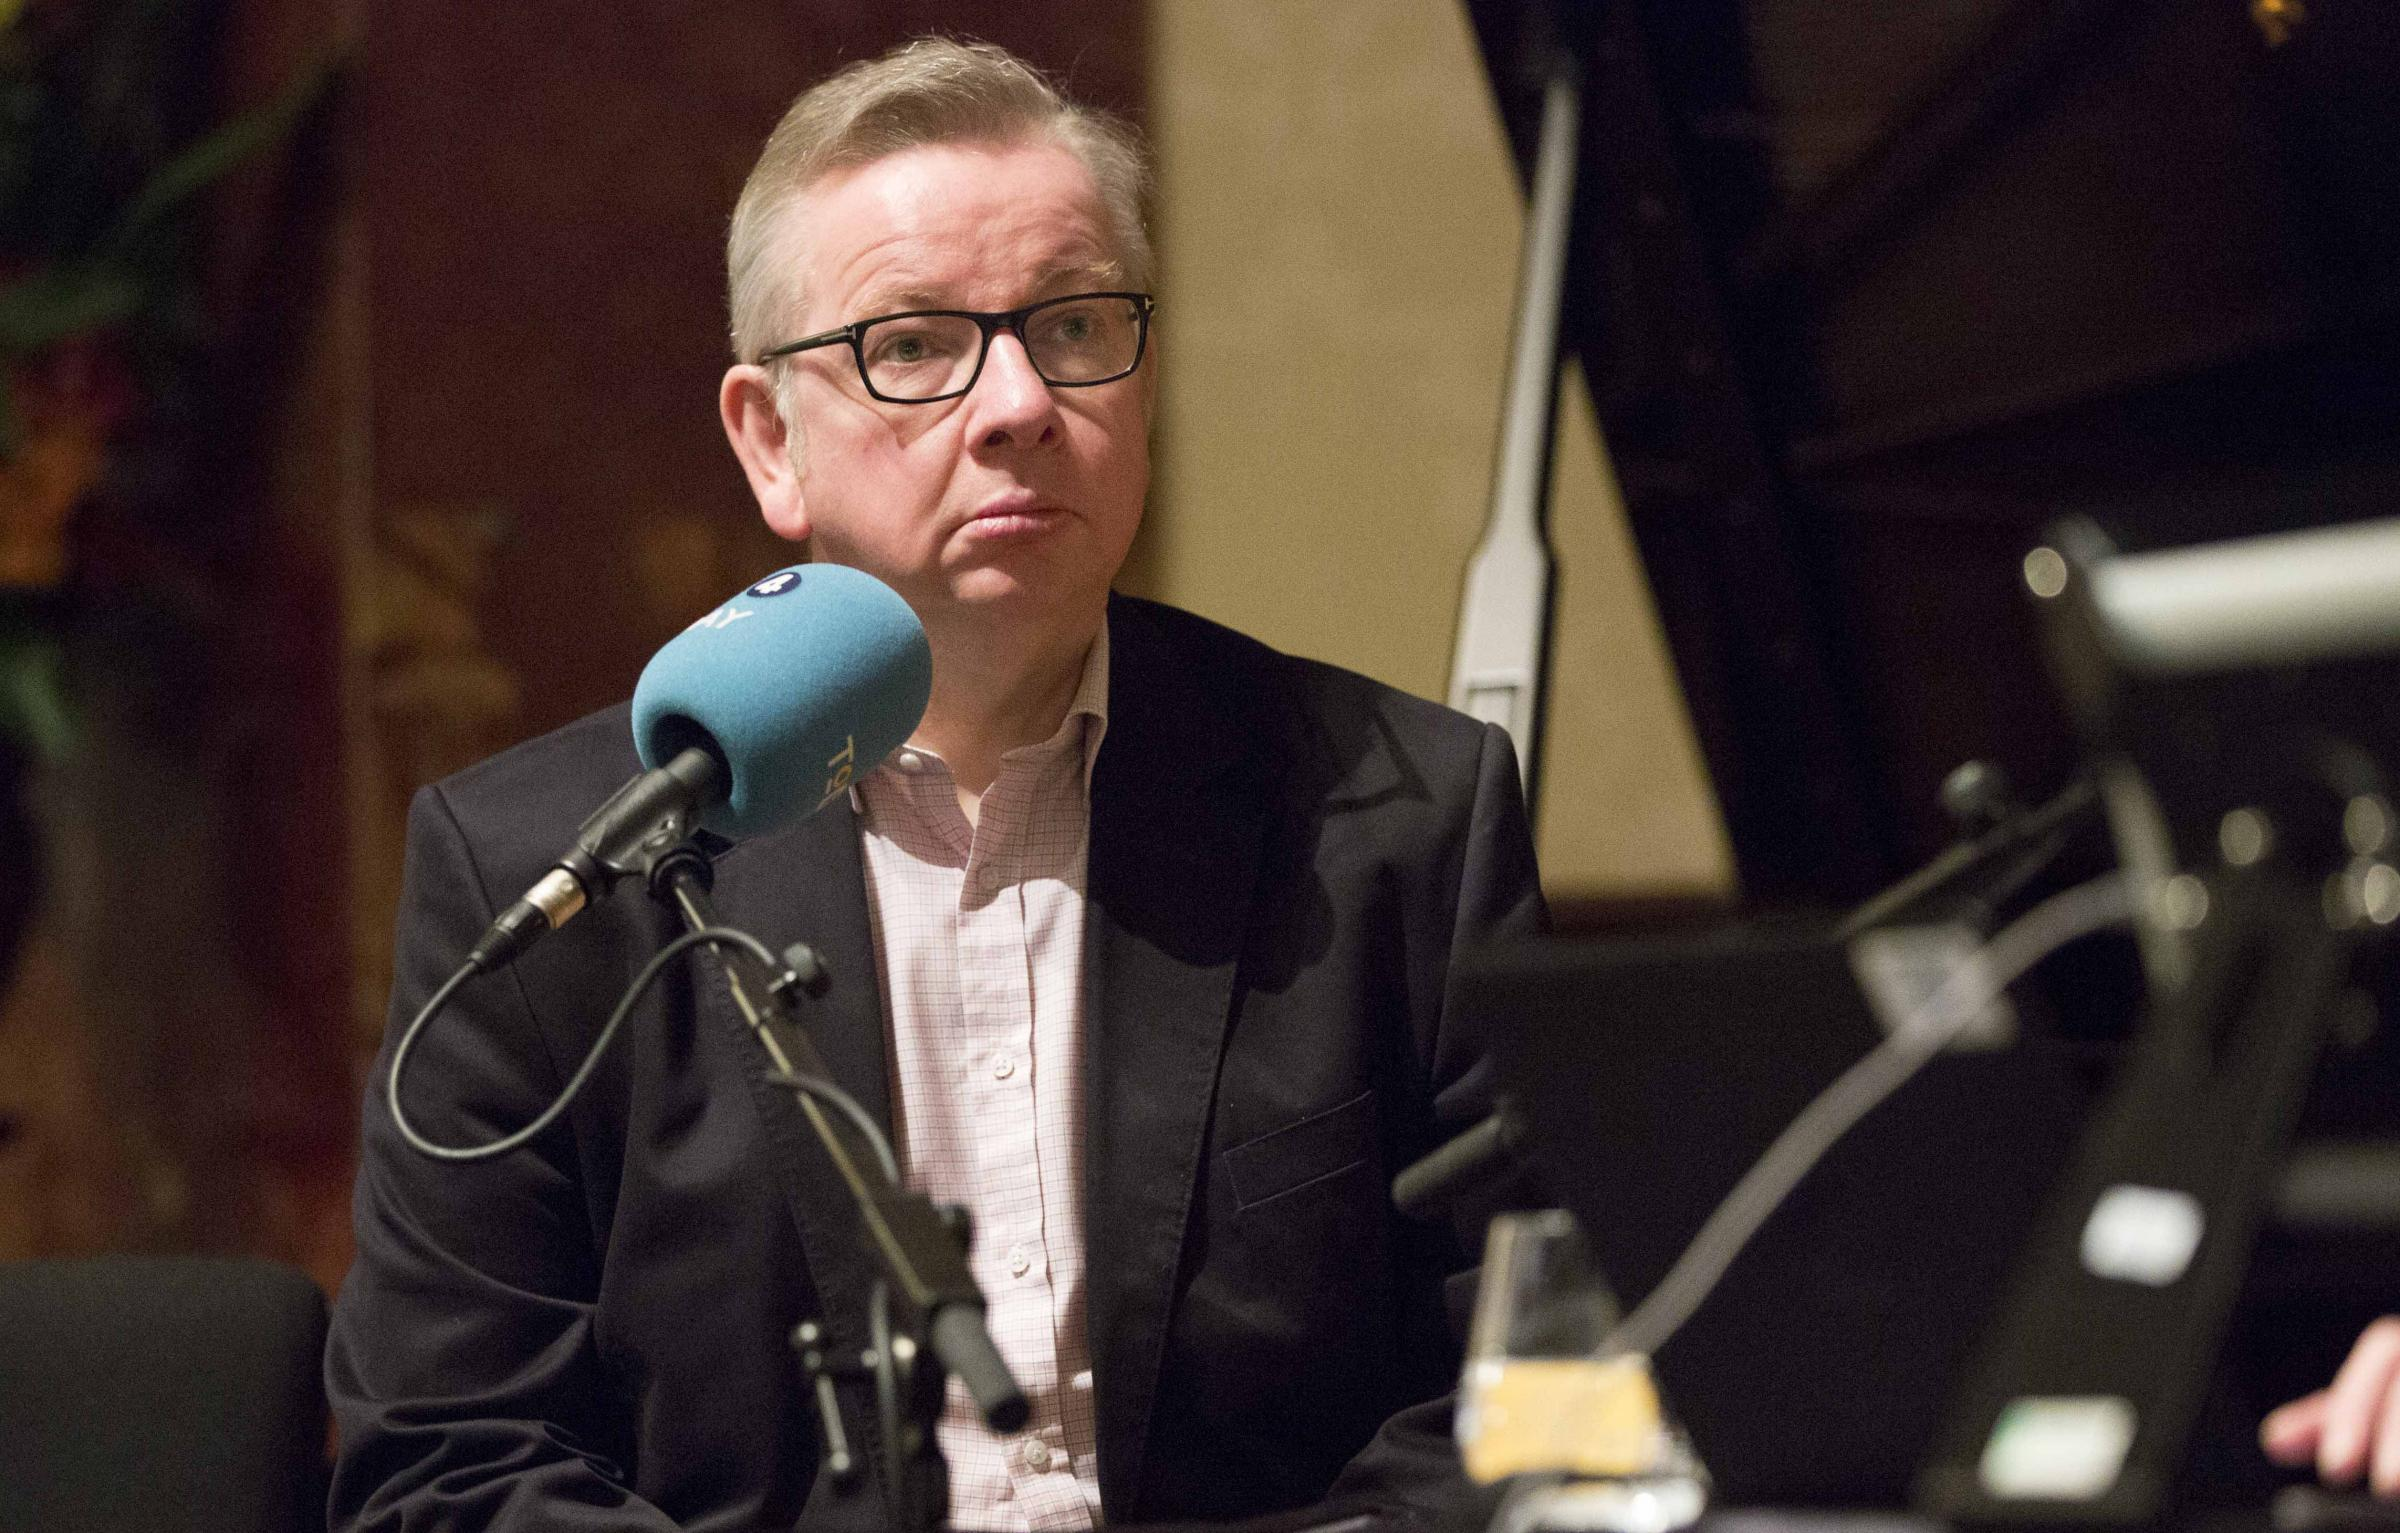 Environment Secretary Michael Gove suggested that being interviewed by BBC Radio 4 presenter John Humphrys was like 'going into Harvey Weinstein's bedroom'. Photograph: Rick Findler/PA Wire